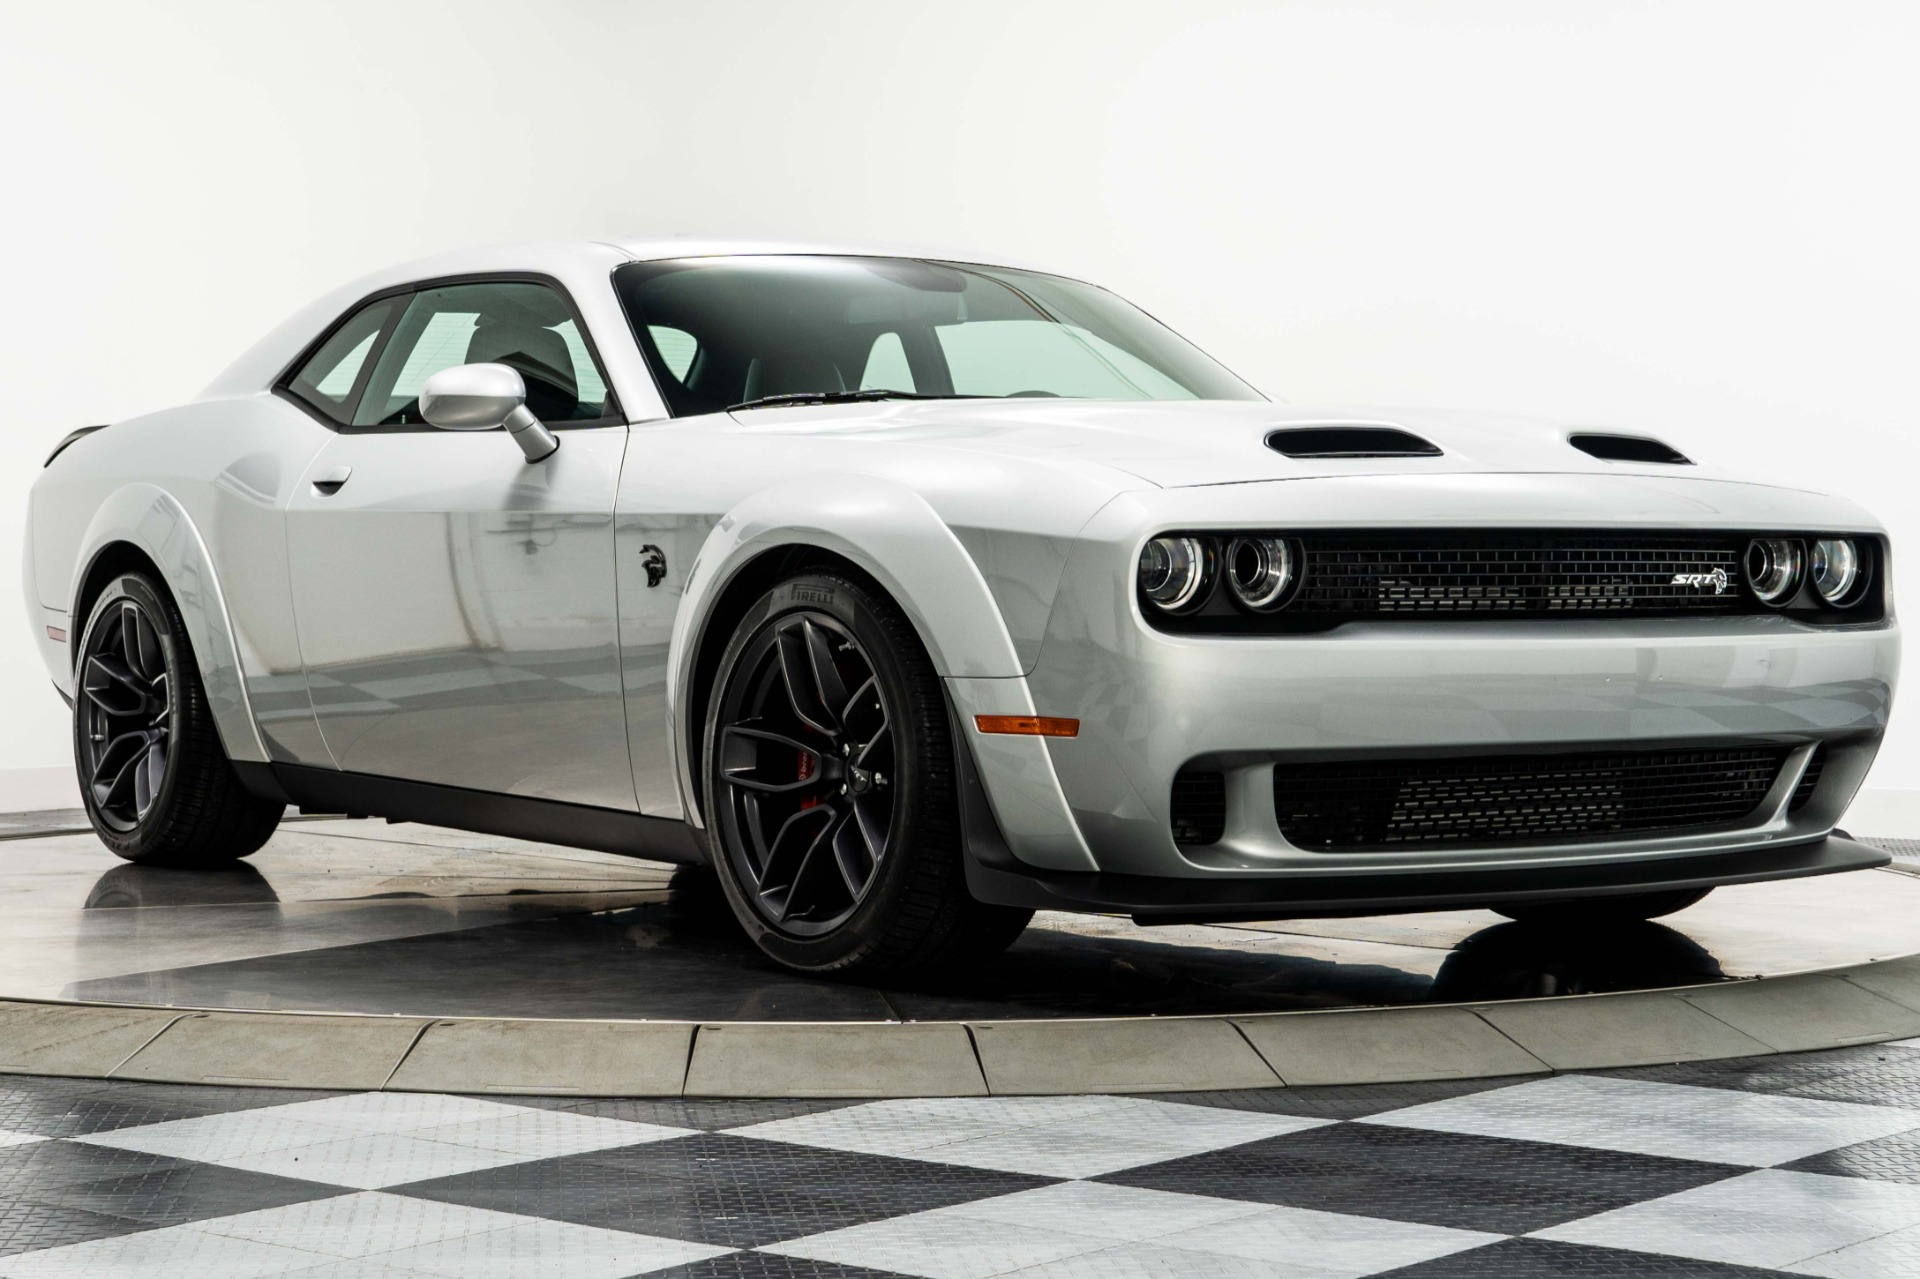 Used 2019 Dodge Challenger Srt Hellcat Redeye Widebody For Sale Sold Marshall Goldman Motor Sales Stock W21092